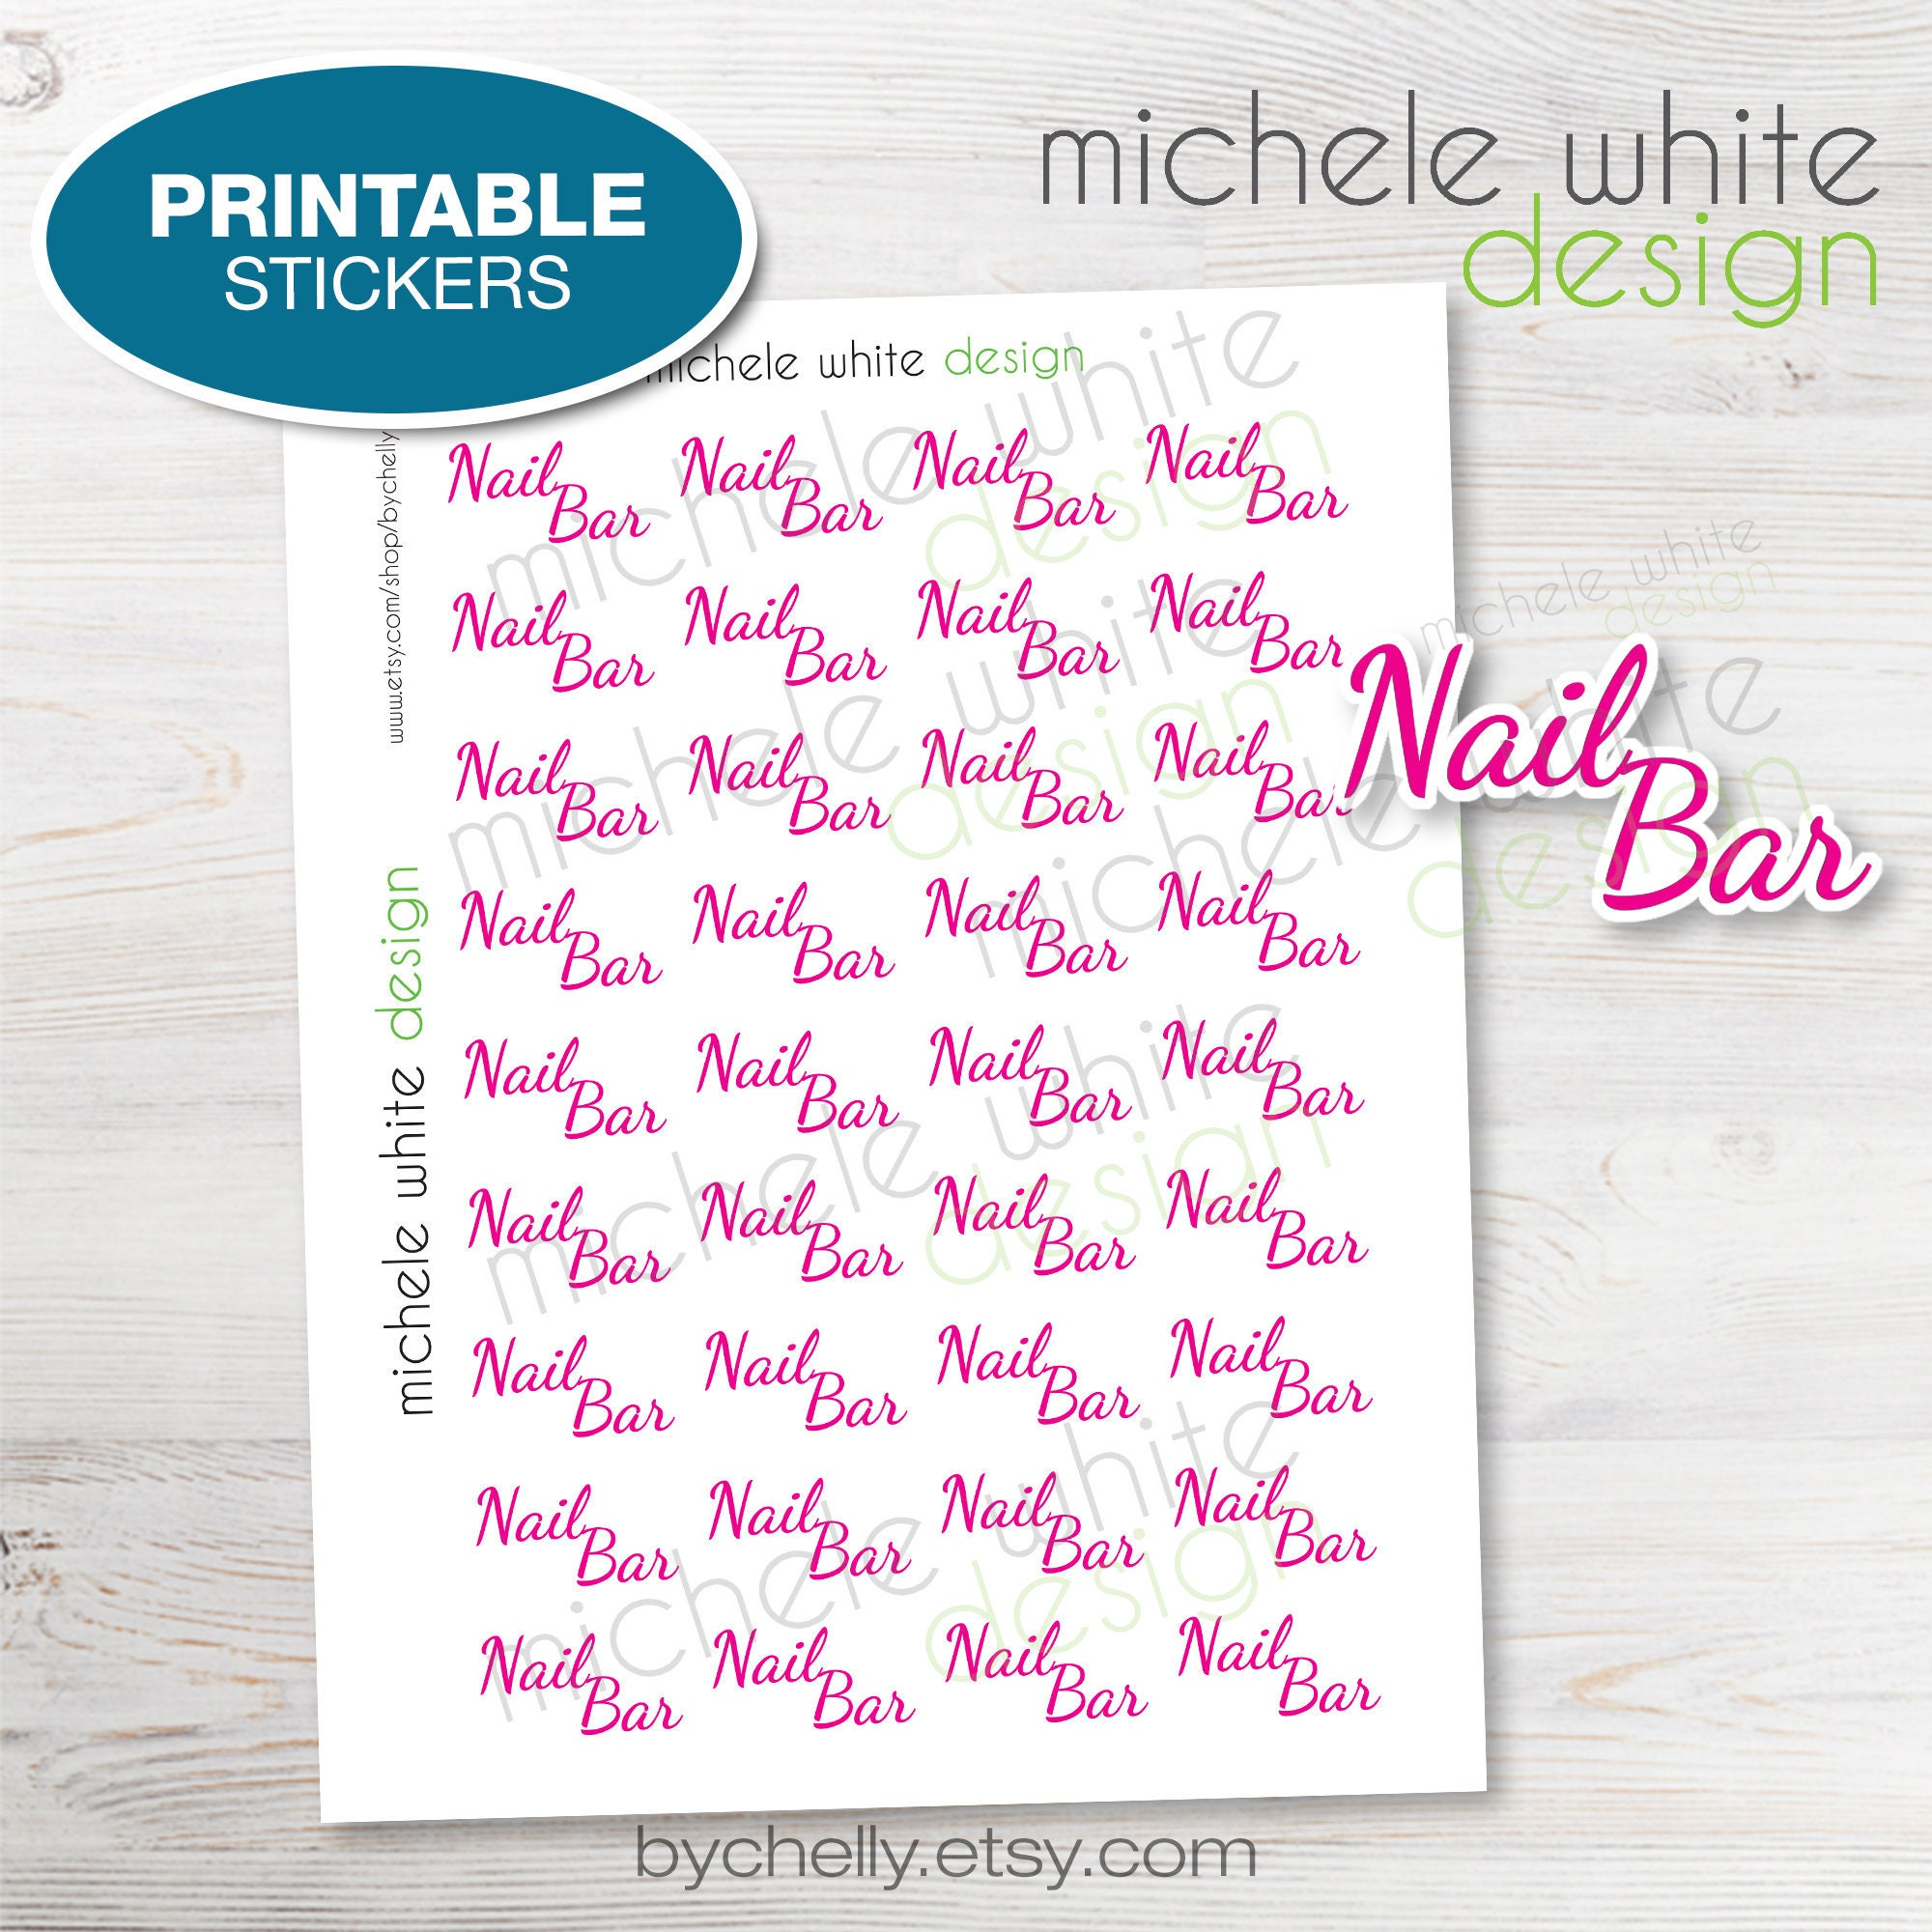 photo relating to Printable Nails titled PRINTABLE - Nail Bar, Planner Stickers, Many Shades, Printable PDF, Immediate Obtain Stickers